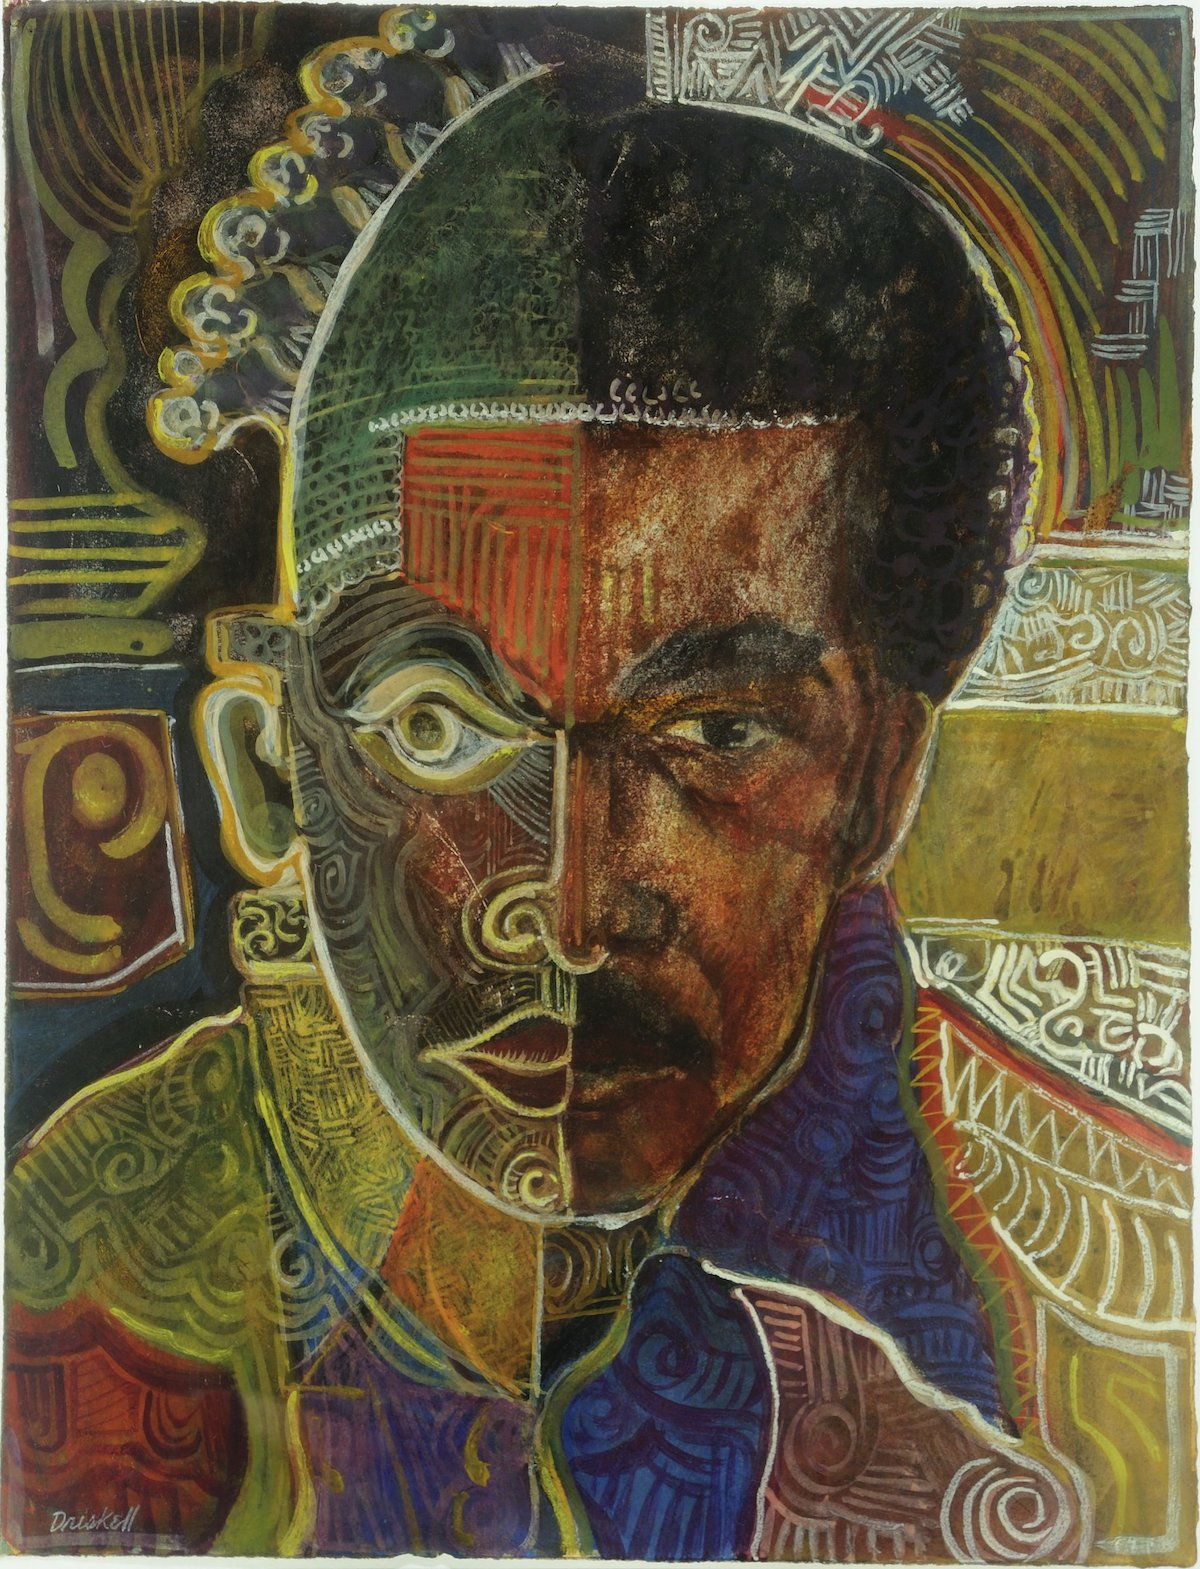 """David C. Driskell, 'Self-Portrait as Beni (""""I Dream Again of Benin"""")', 1974. A man's is split in two, with one half resembling a mask. Around him are abstract patterns that radiate outward."""